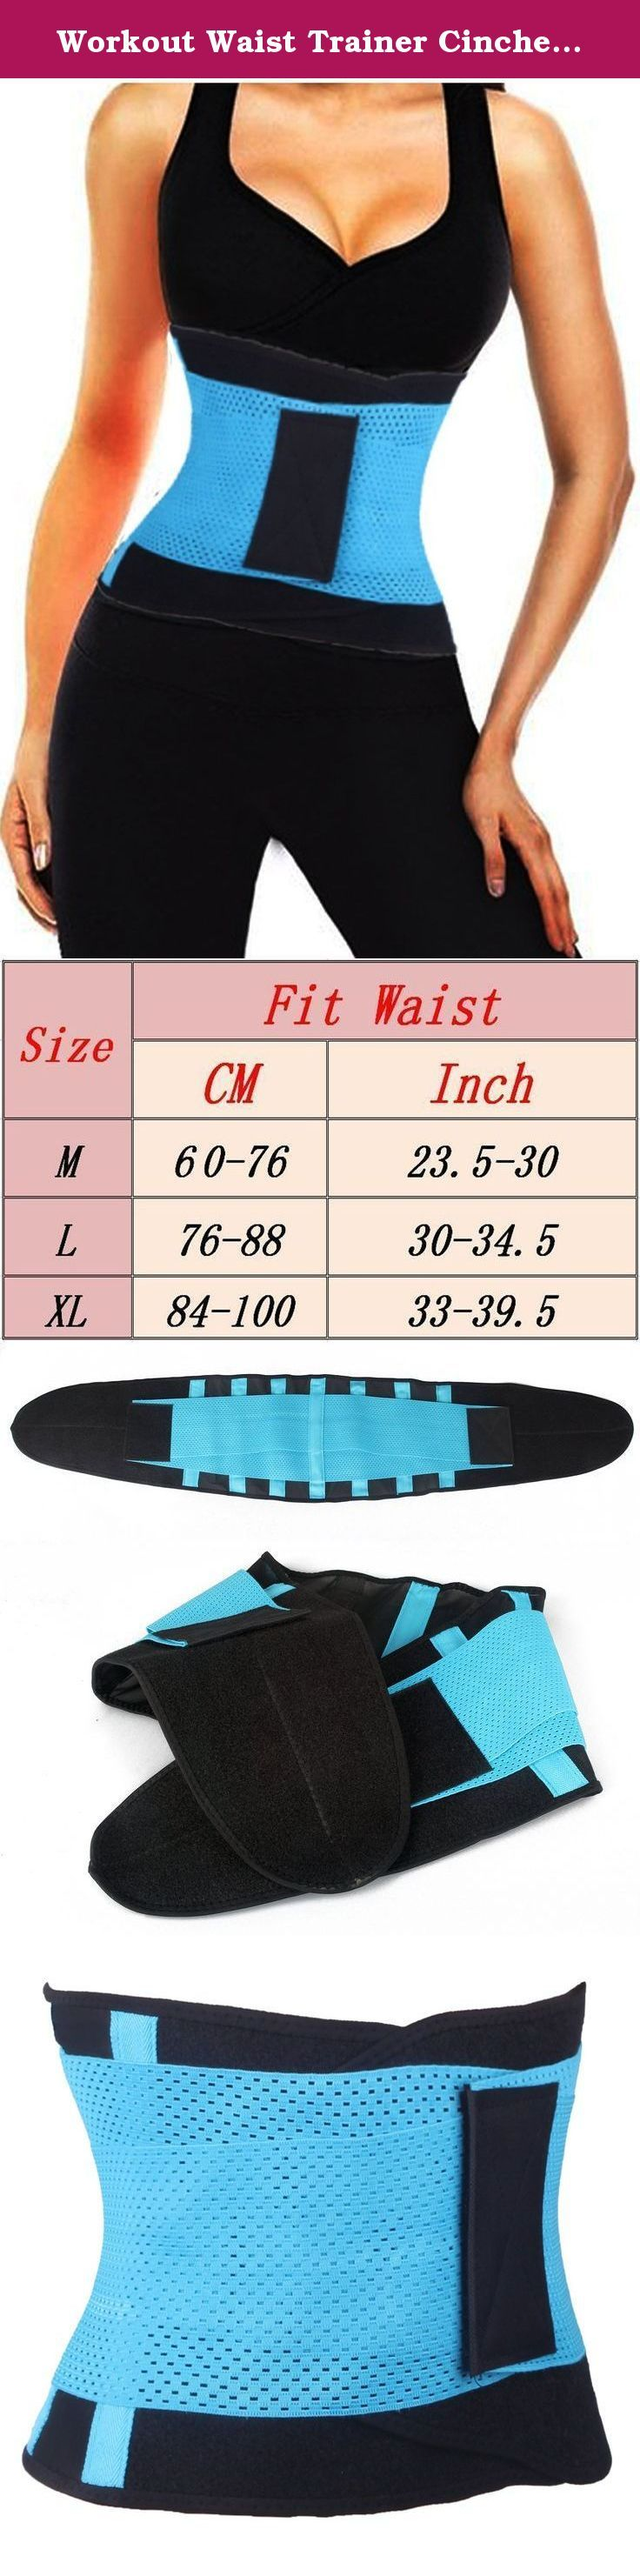 Workout Waist Trainer Cincher Fitness Body Shaper Back Brace Lumbar Support Belt. USE our own size chart, does not support Amazon size chart,Find your perfect size. The Belt is one of the newest waist trainers and body shapers in the market that will help women obtain a slimmer waist and that craved hourglass shape in just two seconds. It works in two simple steps: Step one compresses and supports, Steps two slims your waist instantly. The Belts success is due to its exclusive technology...